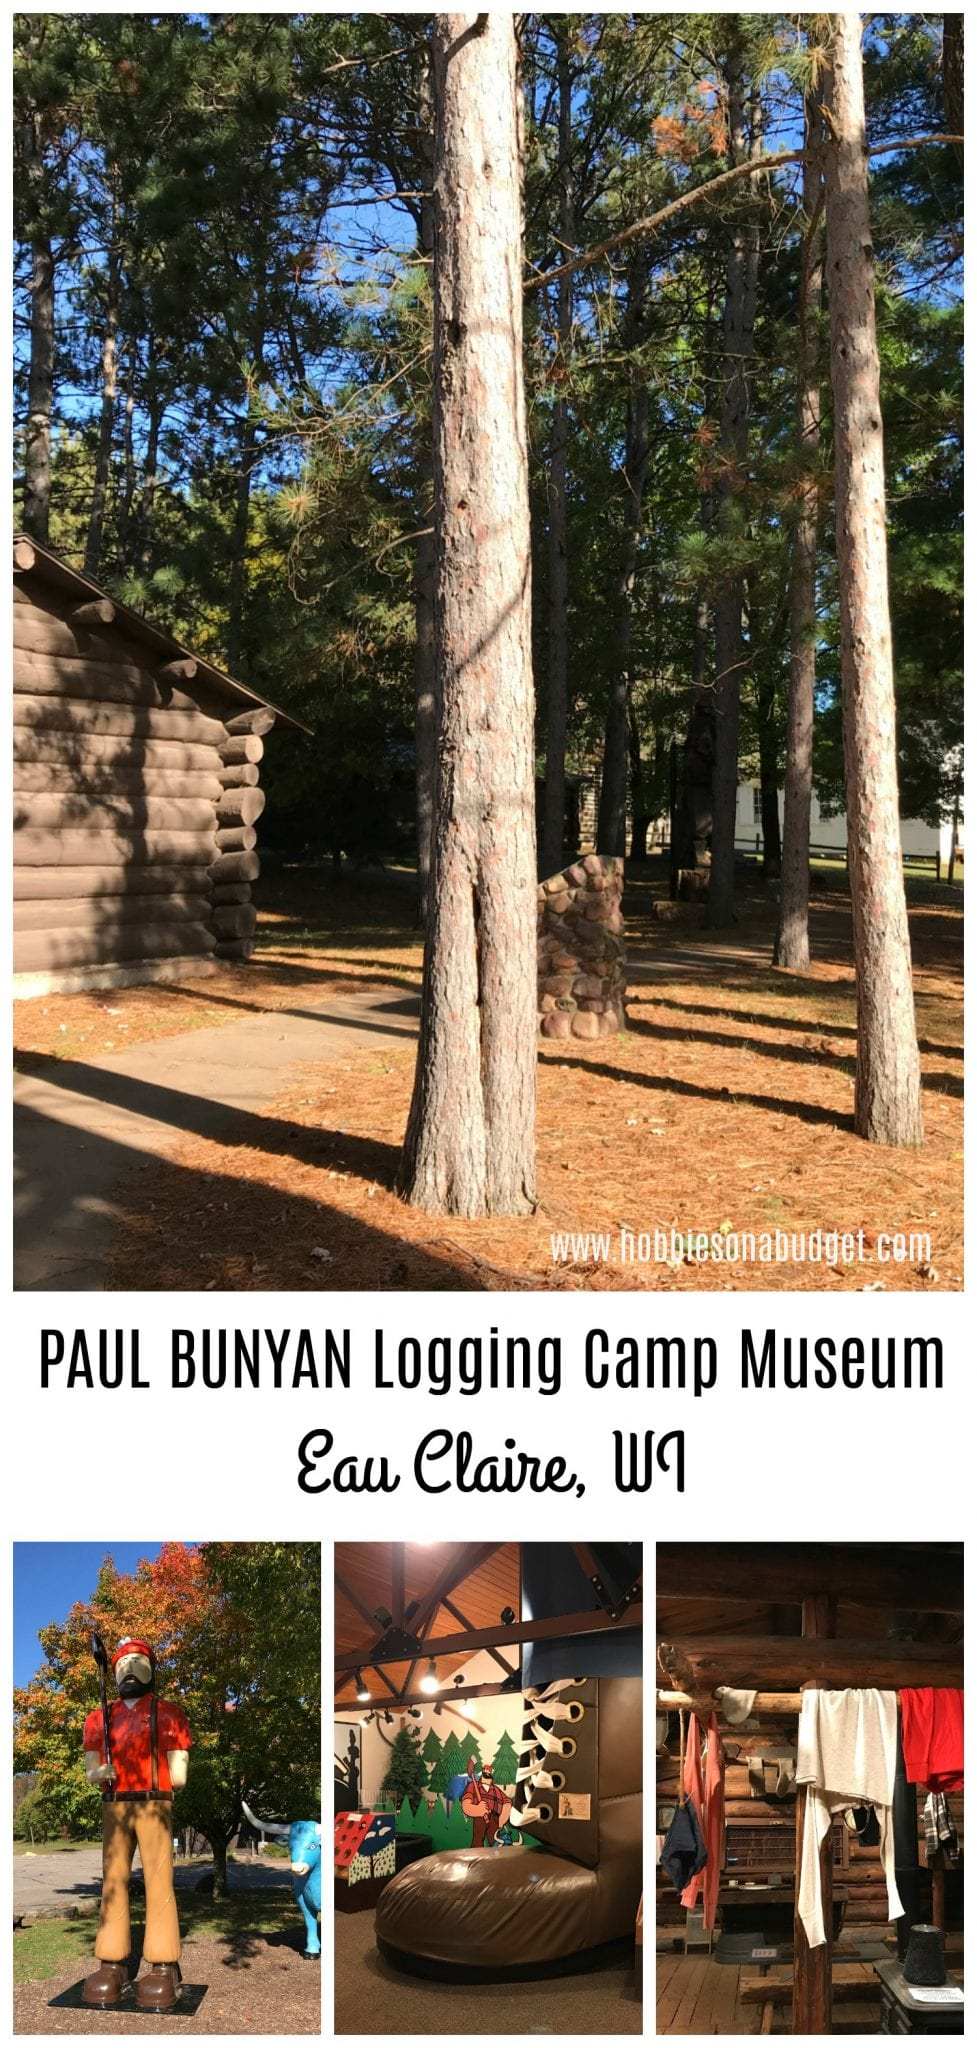 Paul Bunyan Logging Camp Museum